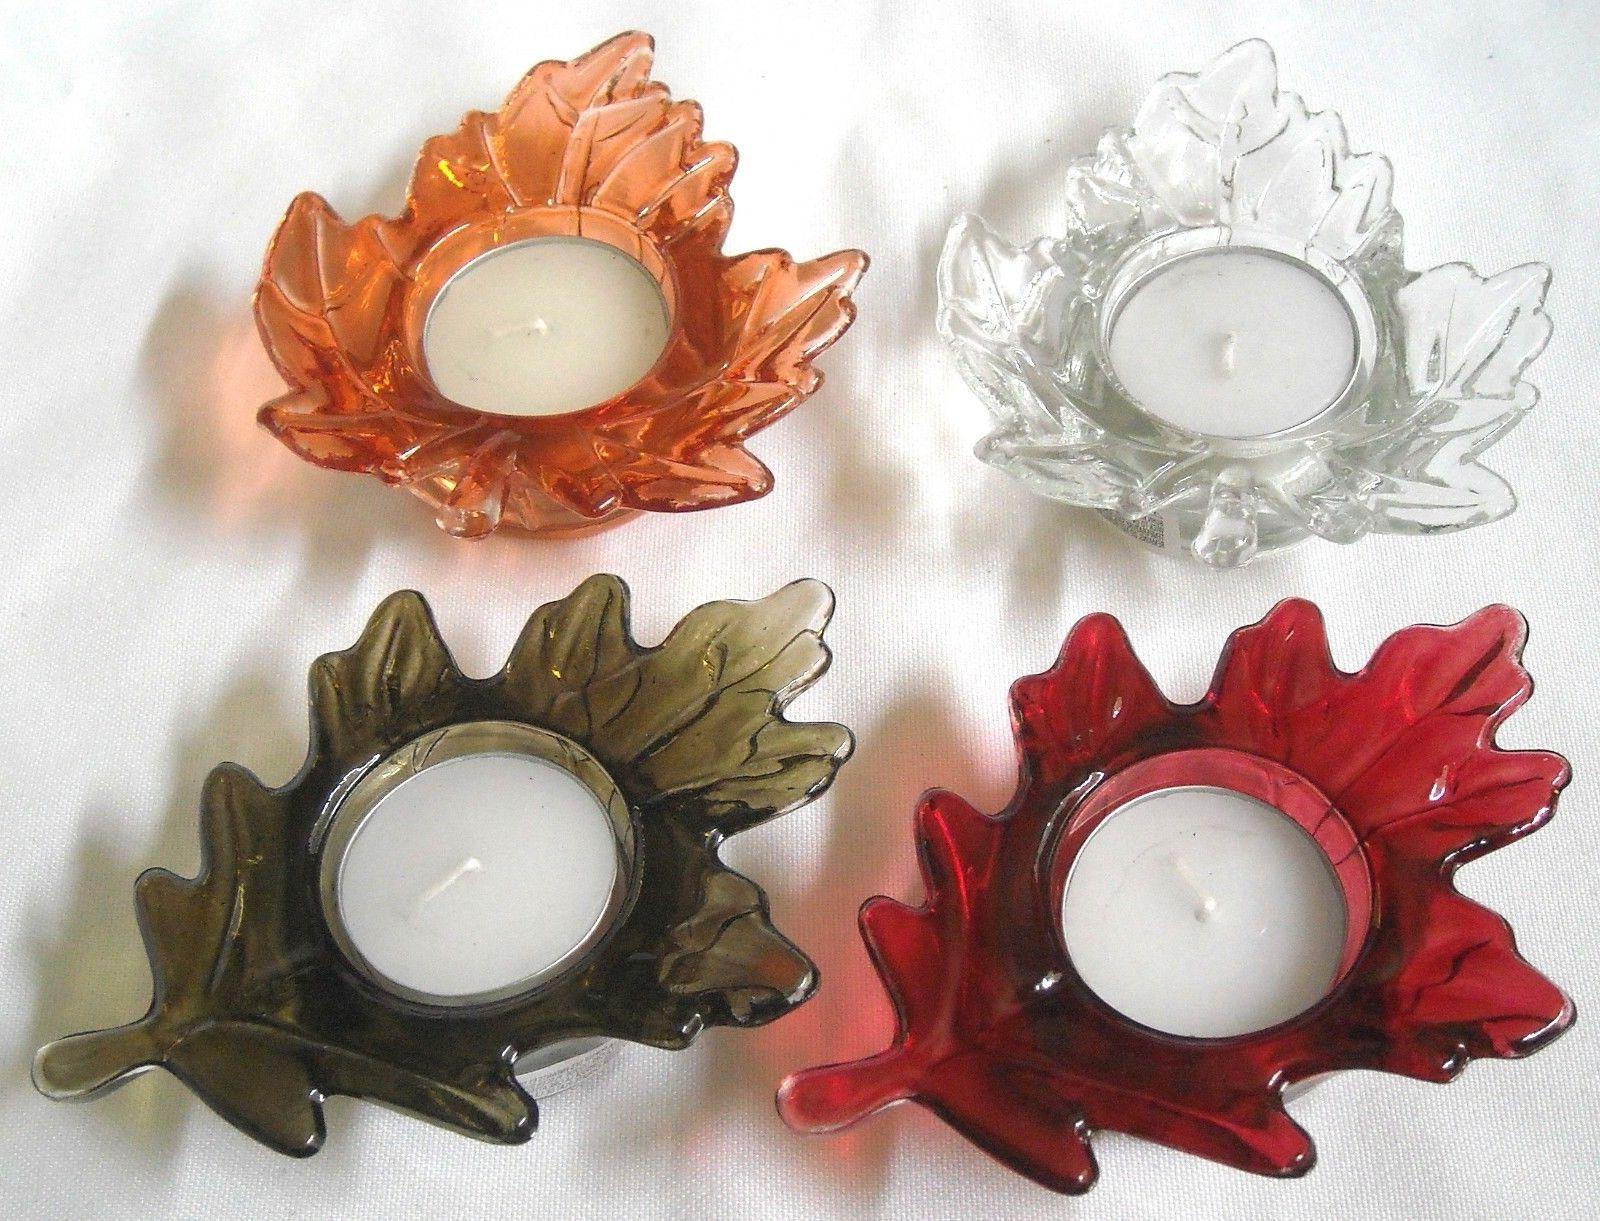 Harvest Leaf Glass Tealight Candle Holder with Tealight Cand